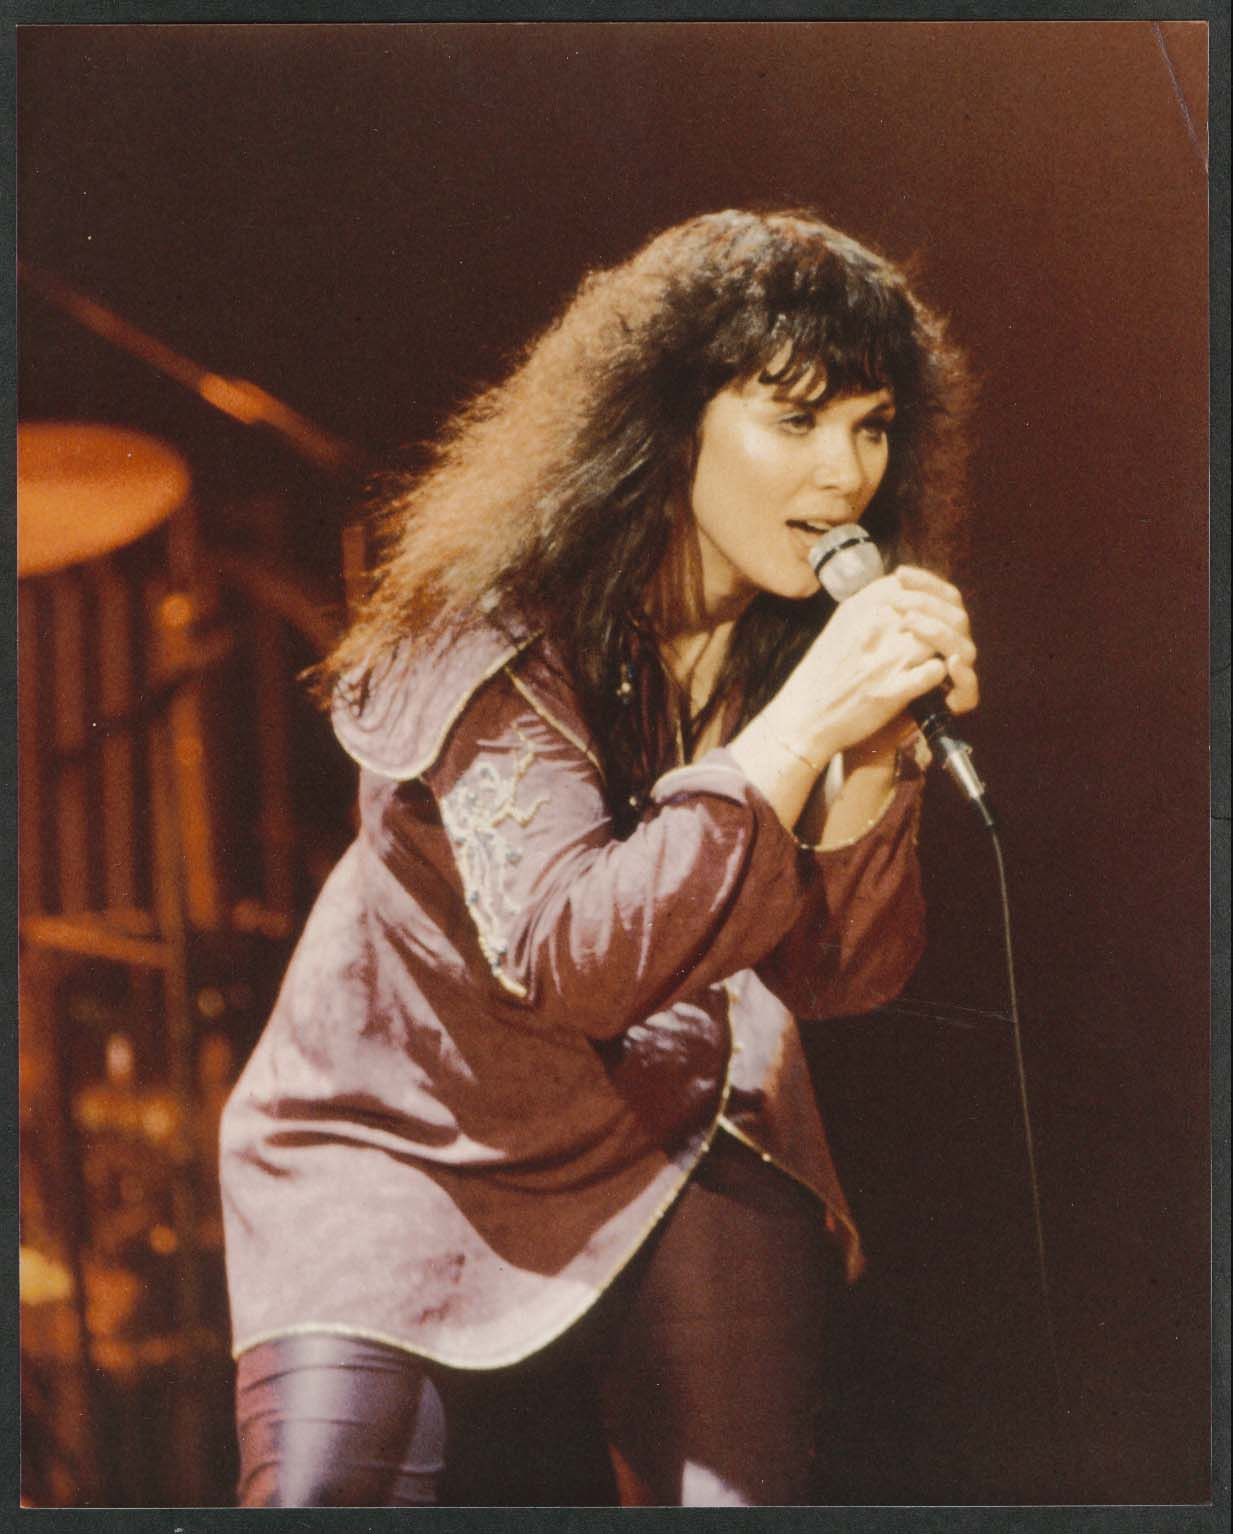 Ann Wilson of Heart performing on stage 8x10 photograph 1980s